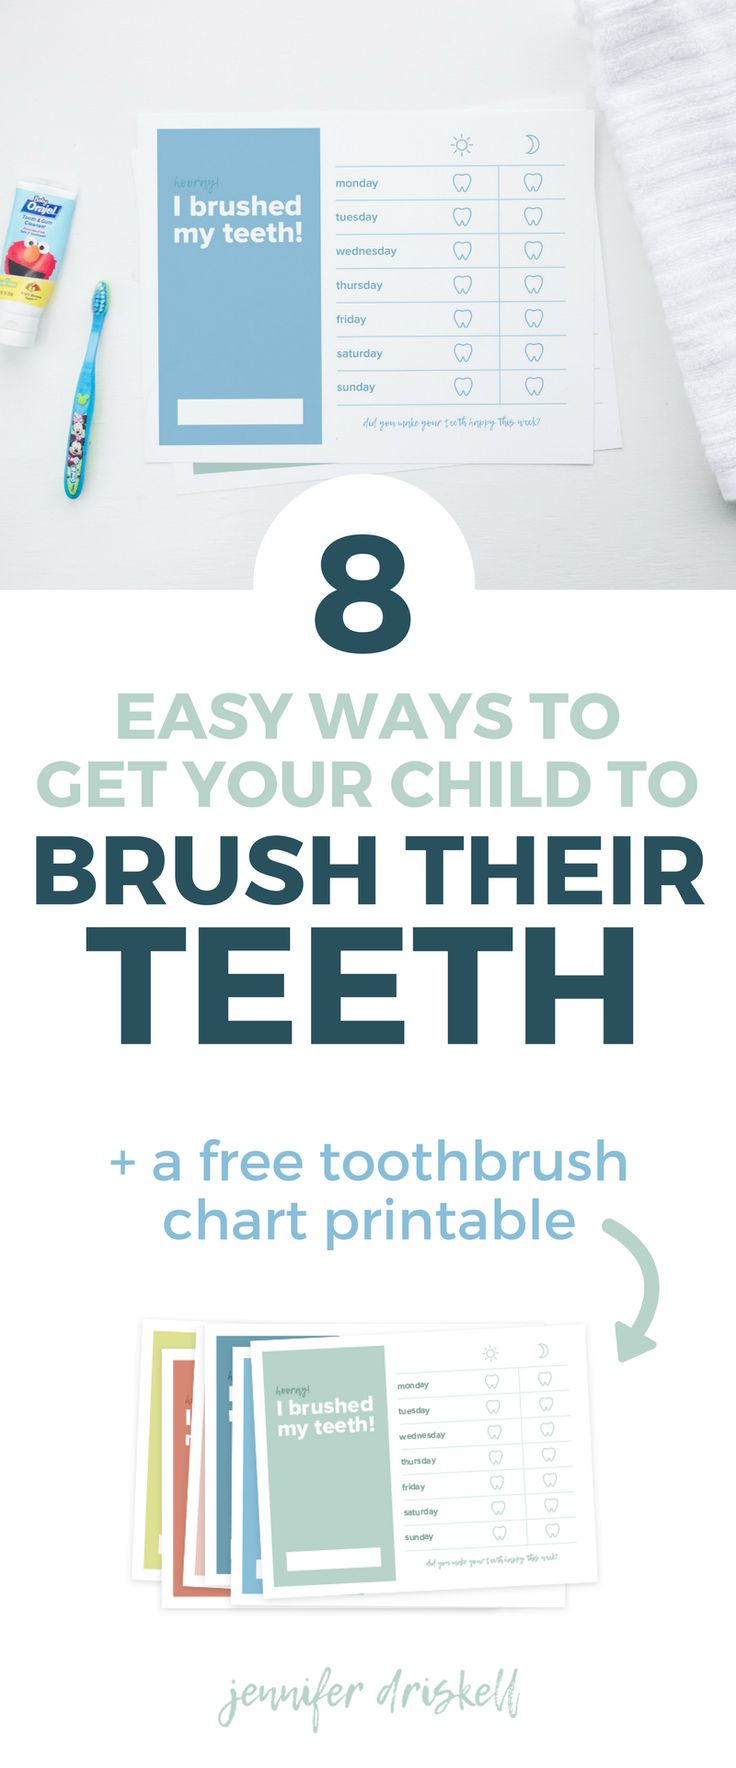 8 Easy Ways to Get Your Child to Brush Their Teeth | Getting your little one to brush their teeth shouldn't be a challenge. These tips and ideas will get them excited about brushing their teeth and make this chore a little more fun. Plus, you can download a free toothbrush chart printable!